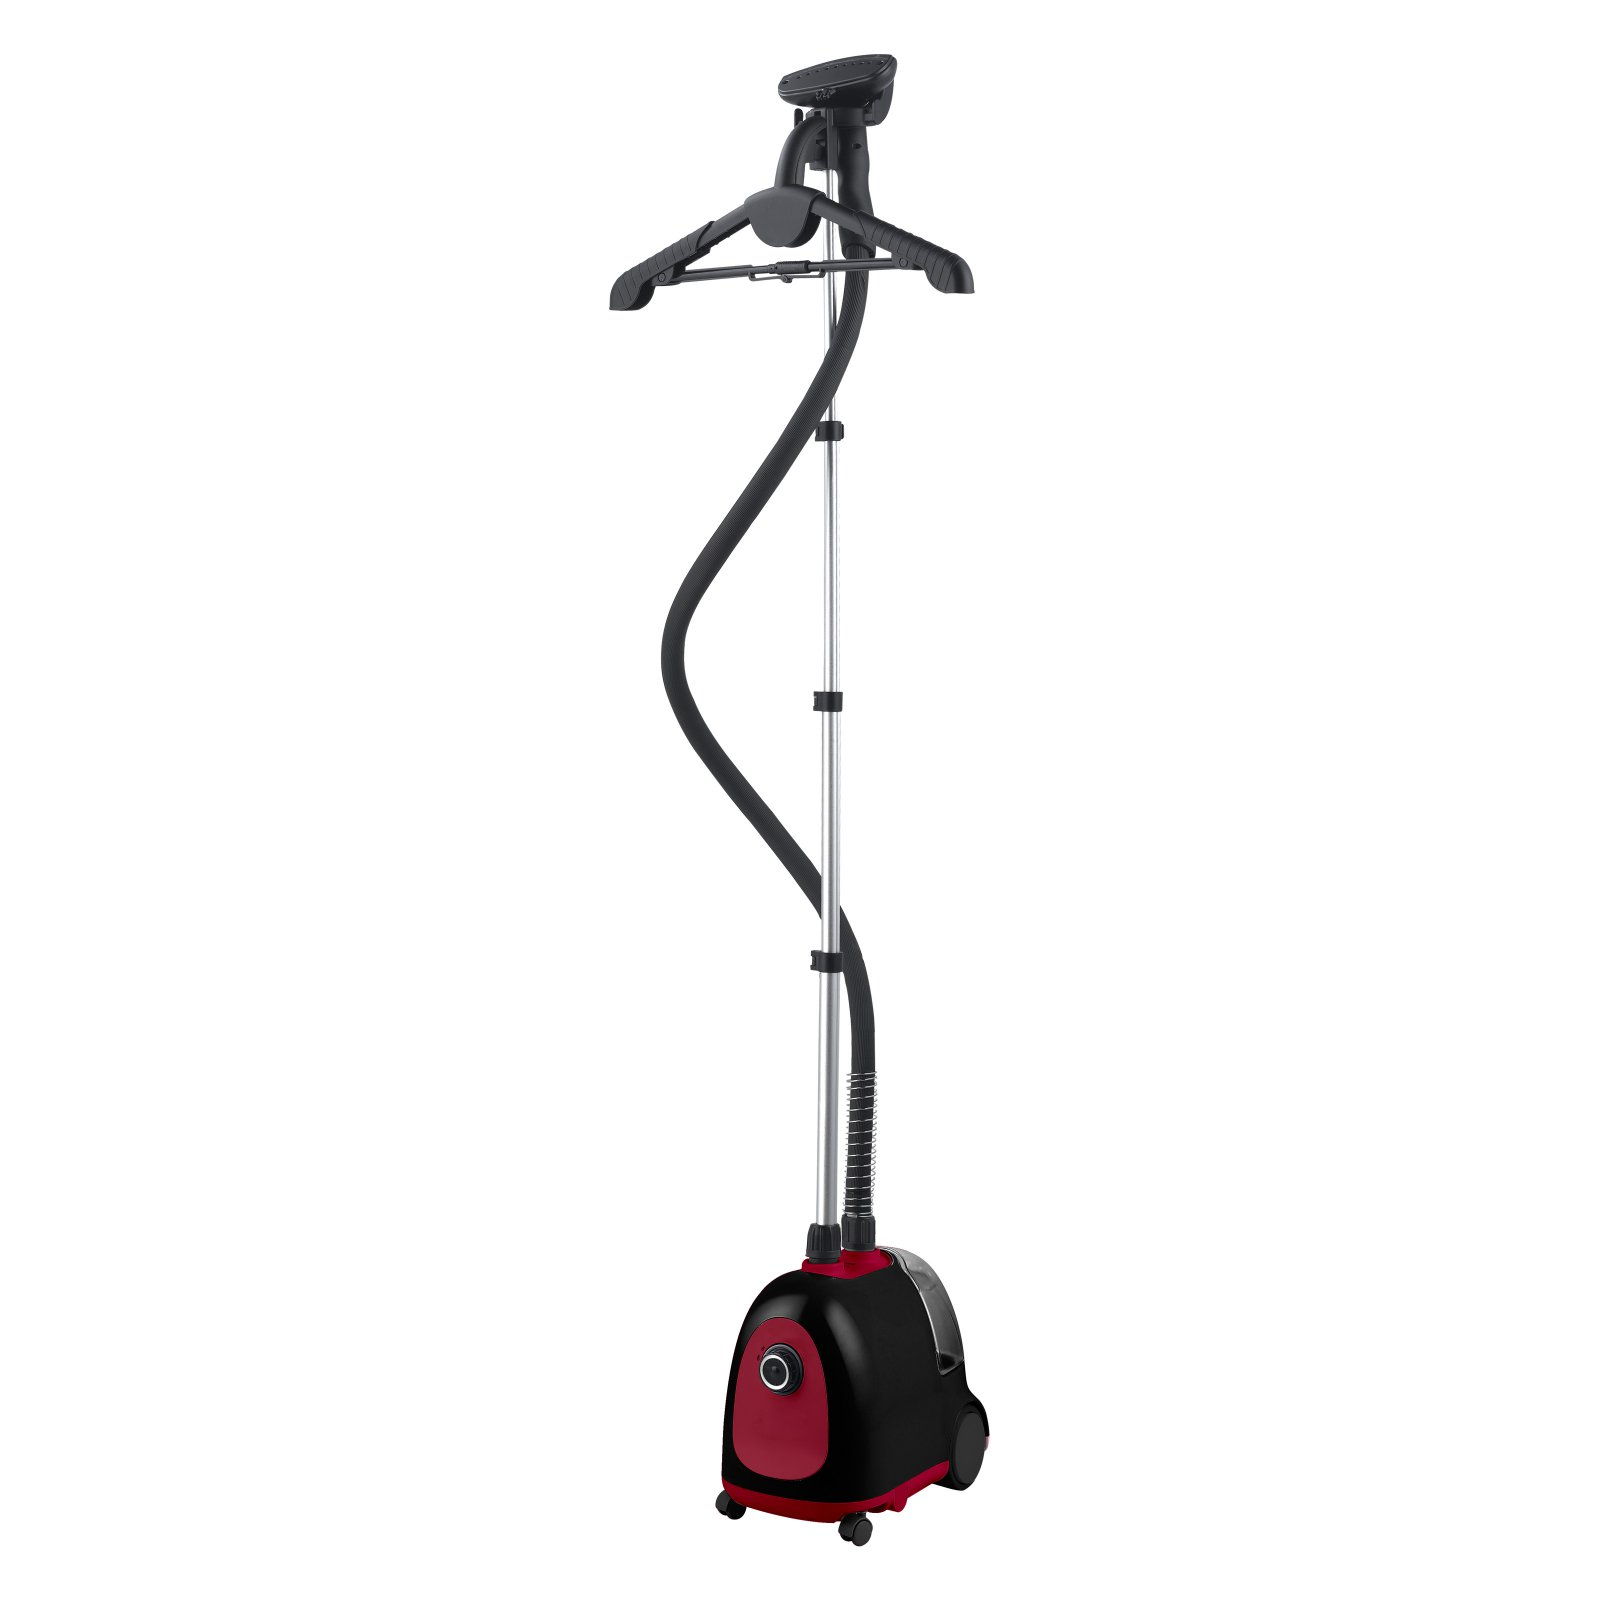 Steam and Go - Professional garment steamer for in home use with accessories included! SAG-12 Red